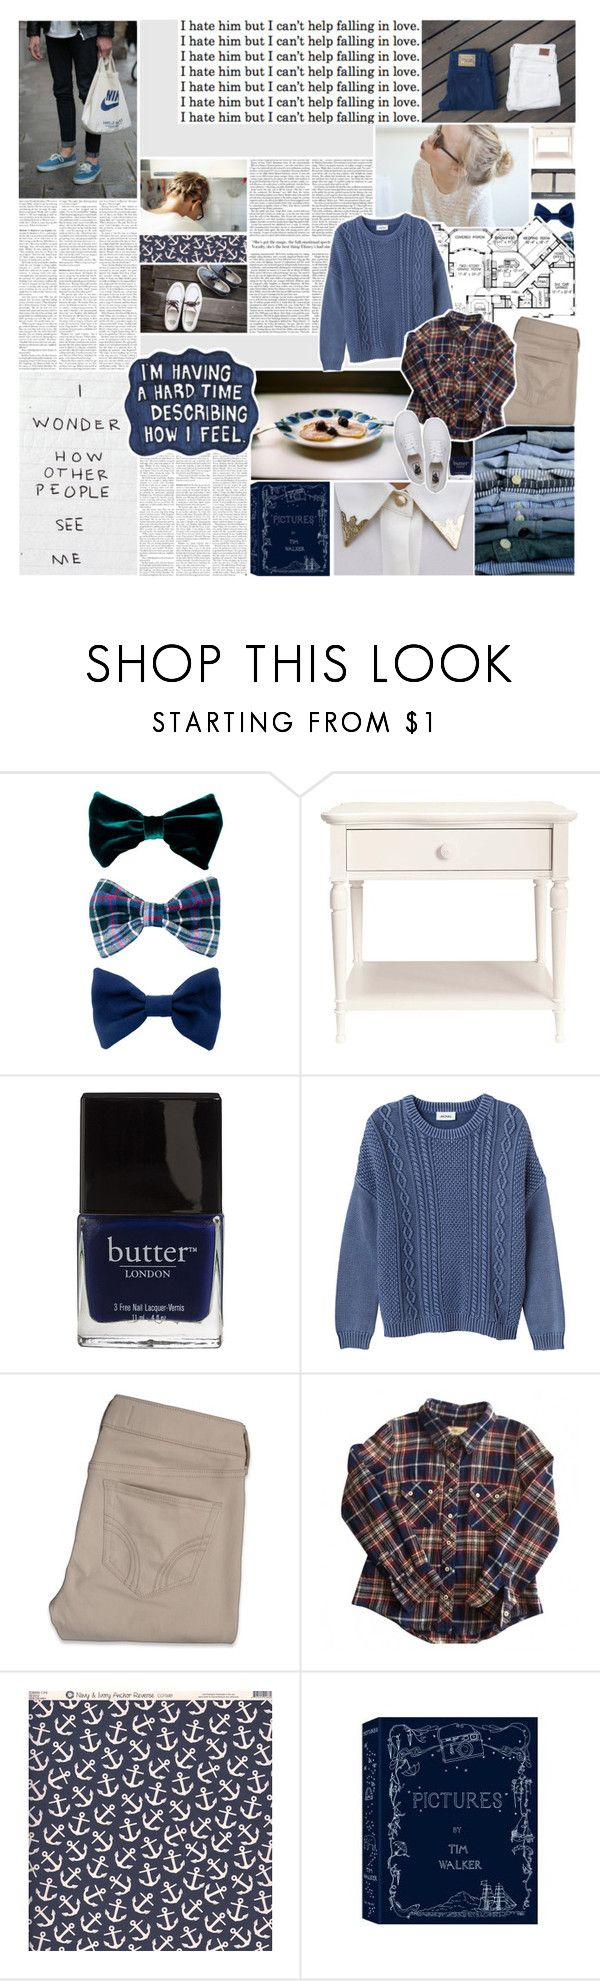 """""""//"""" by mazowiecki-becky ❤ liked on Polyvore featuring American Apparel, Vans, Butter London, NARS Cosmetics, Monki, Hollister Co., Étoile Isabel Marant, Sharpie and Edition"""